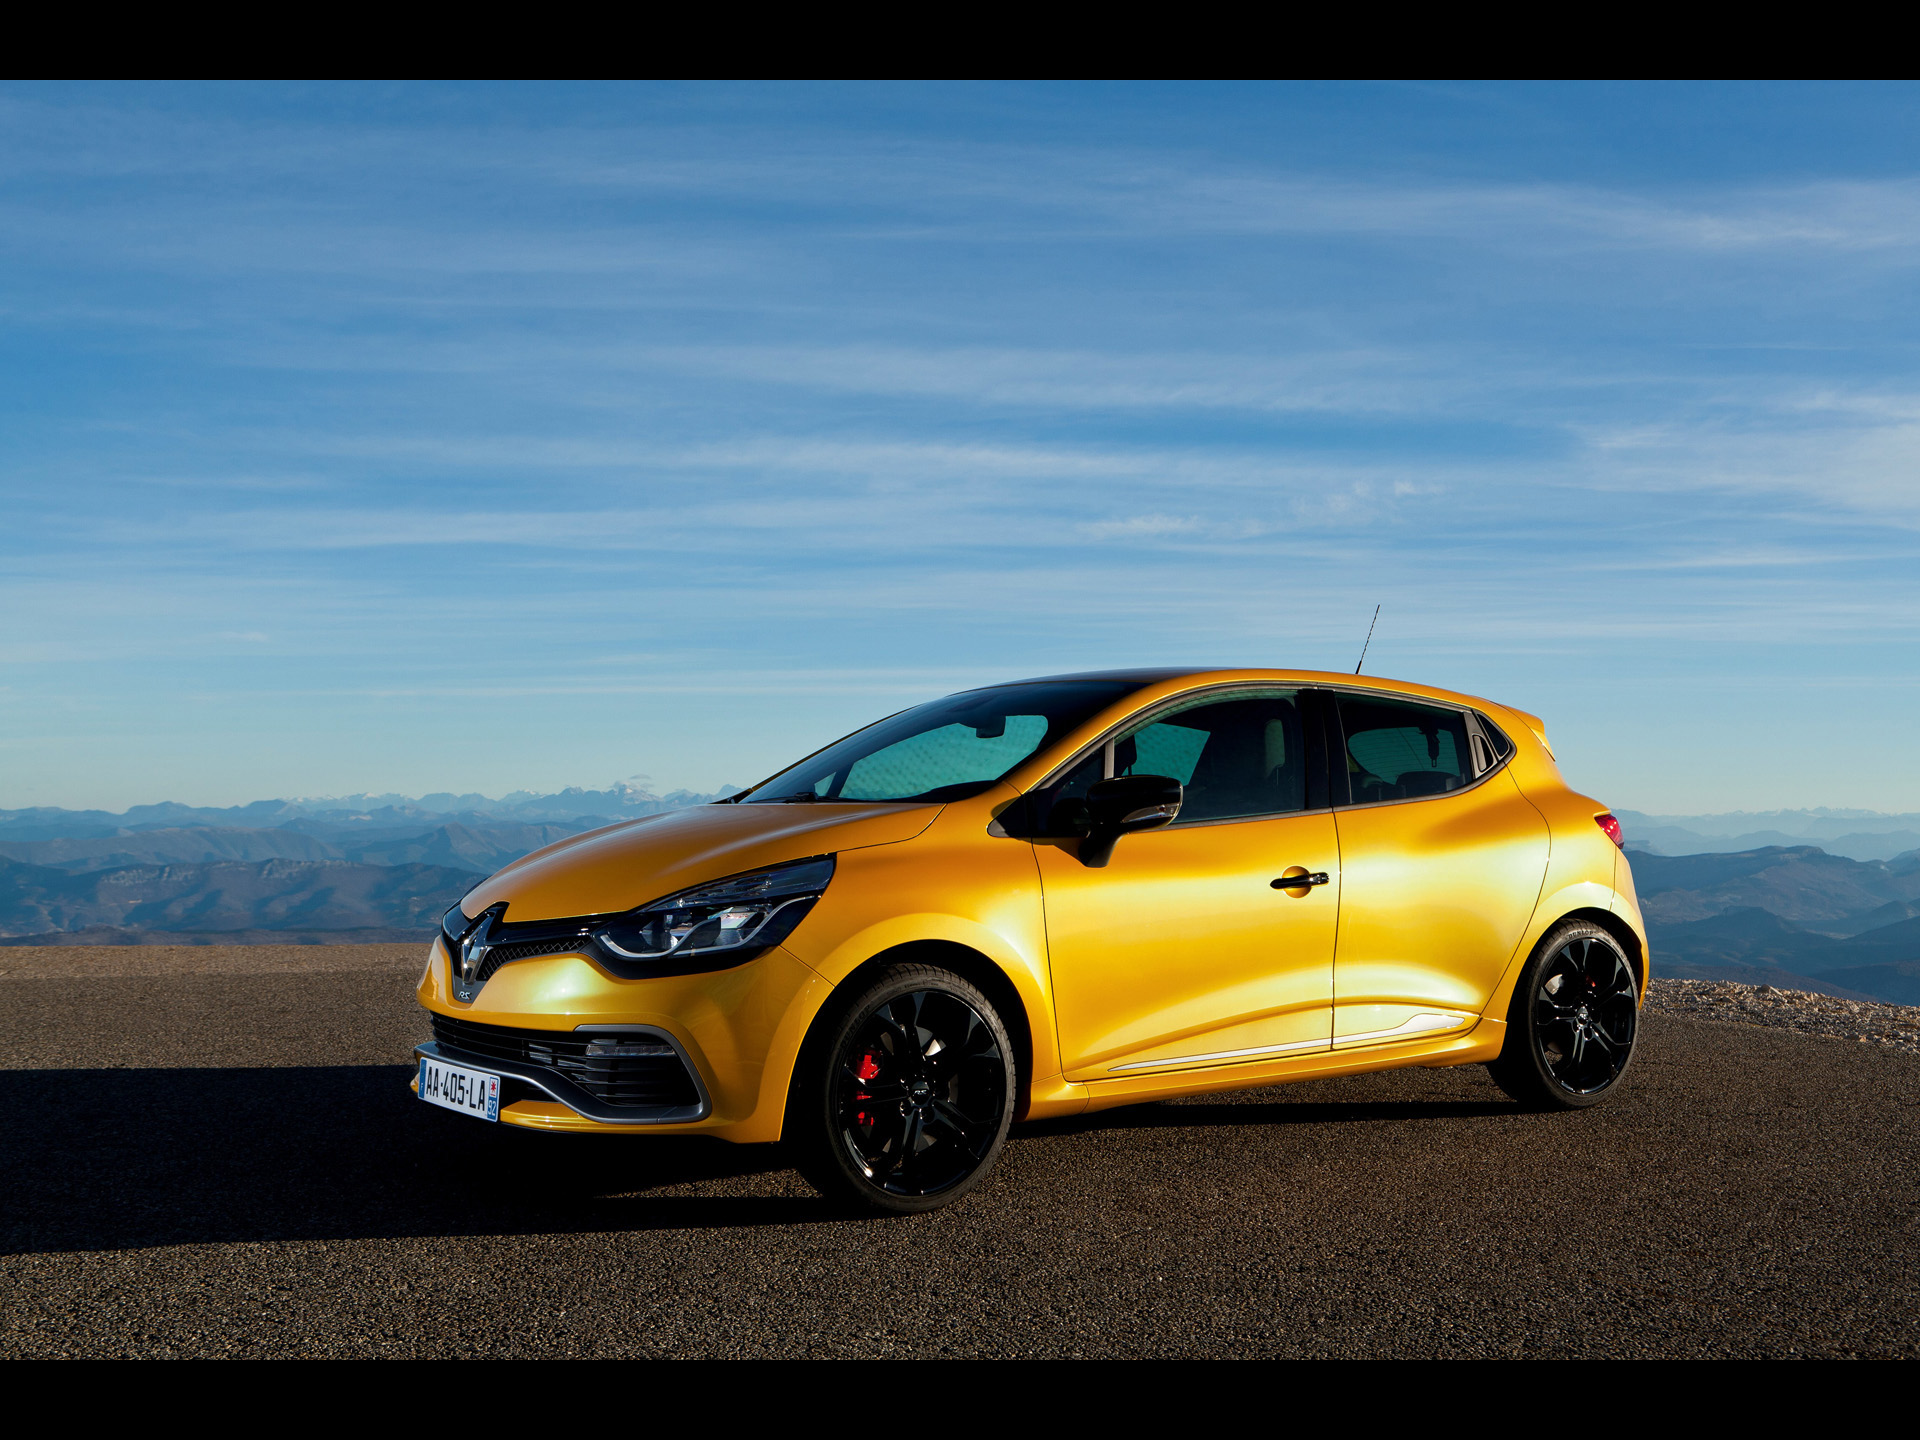 3 2013 renault clio rs 200 edc hd wallpapers backgrounds wallpaper abyss. Black Bedroom Furniture Sets. Home Design Ideas